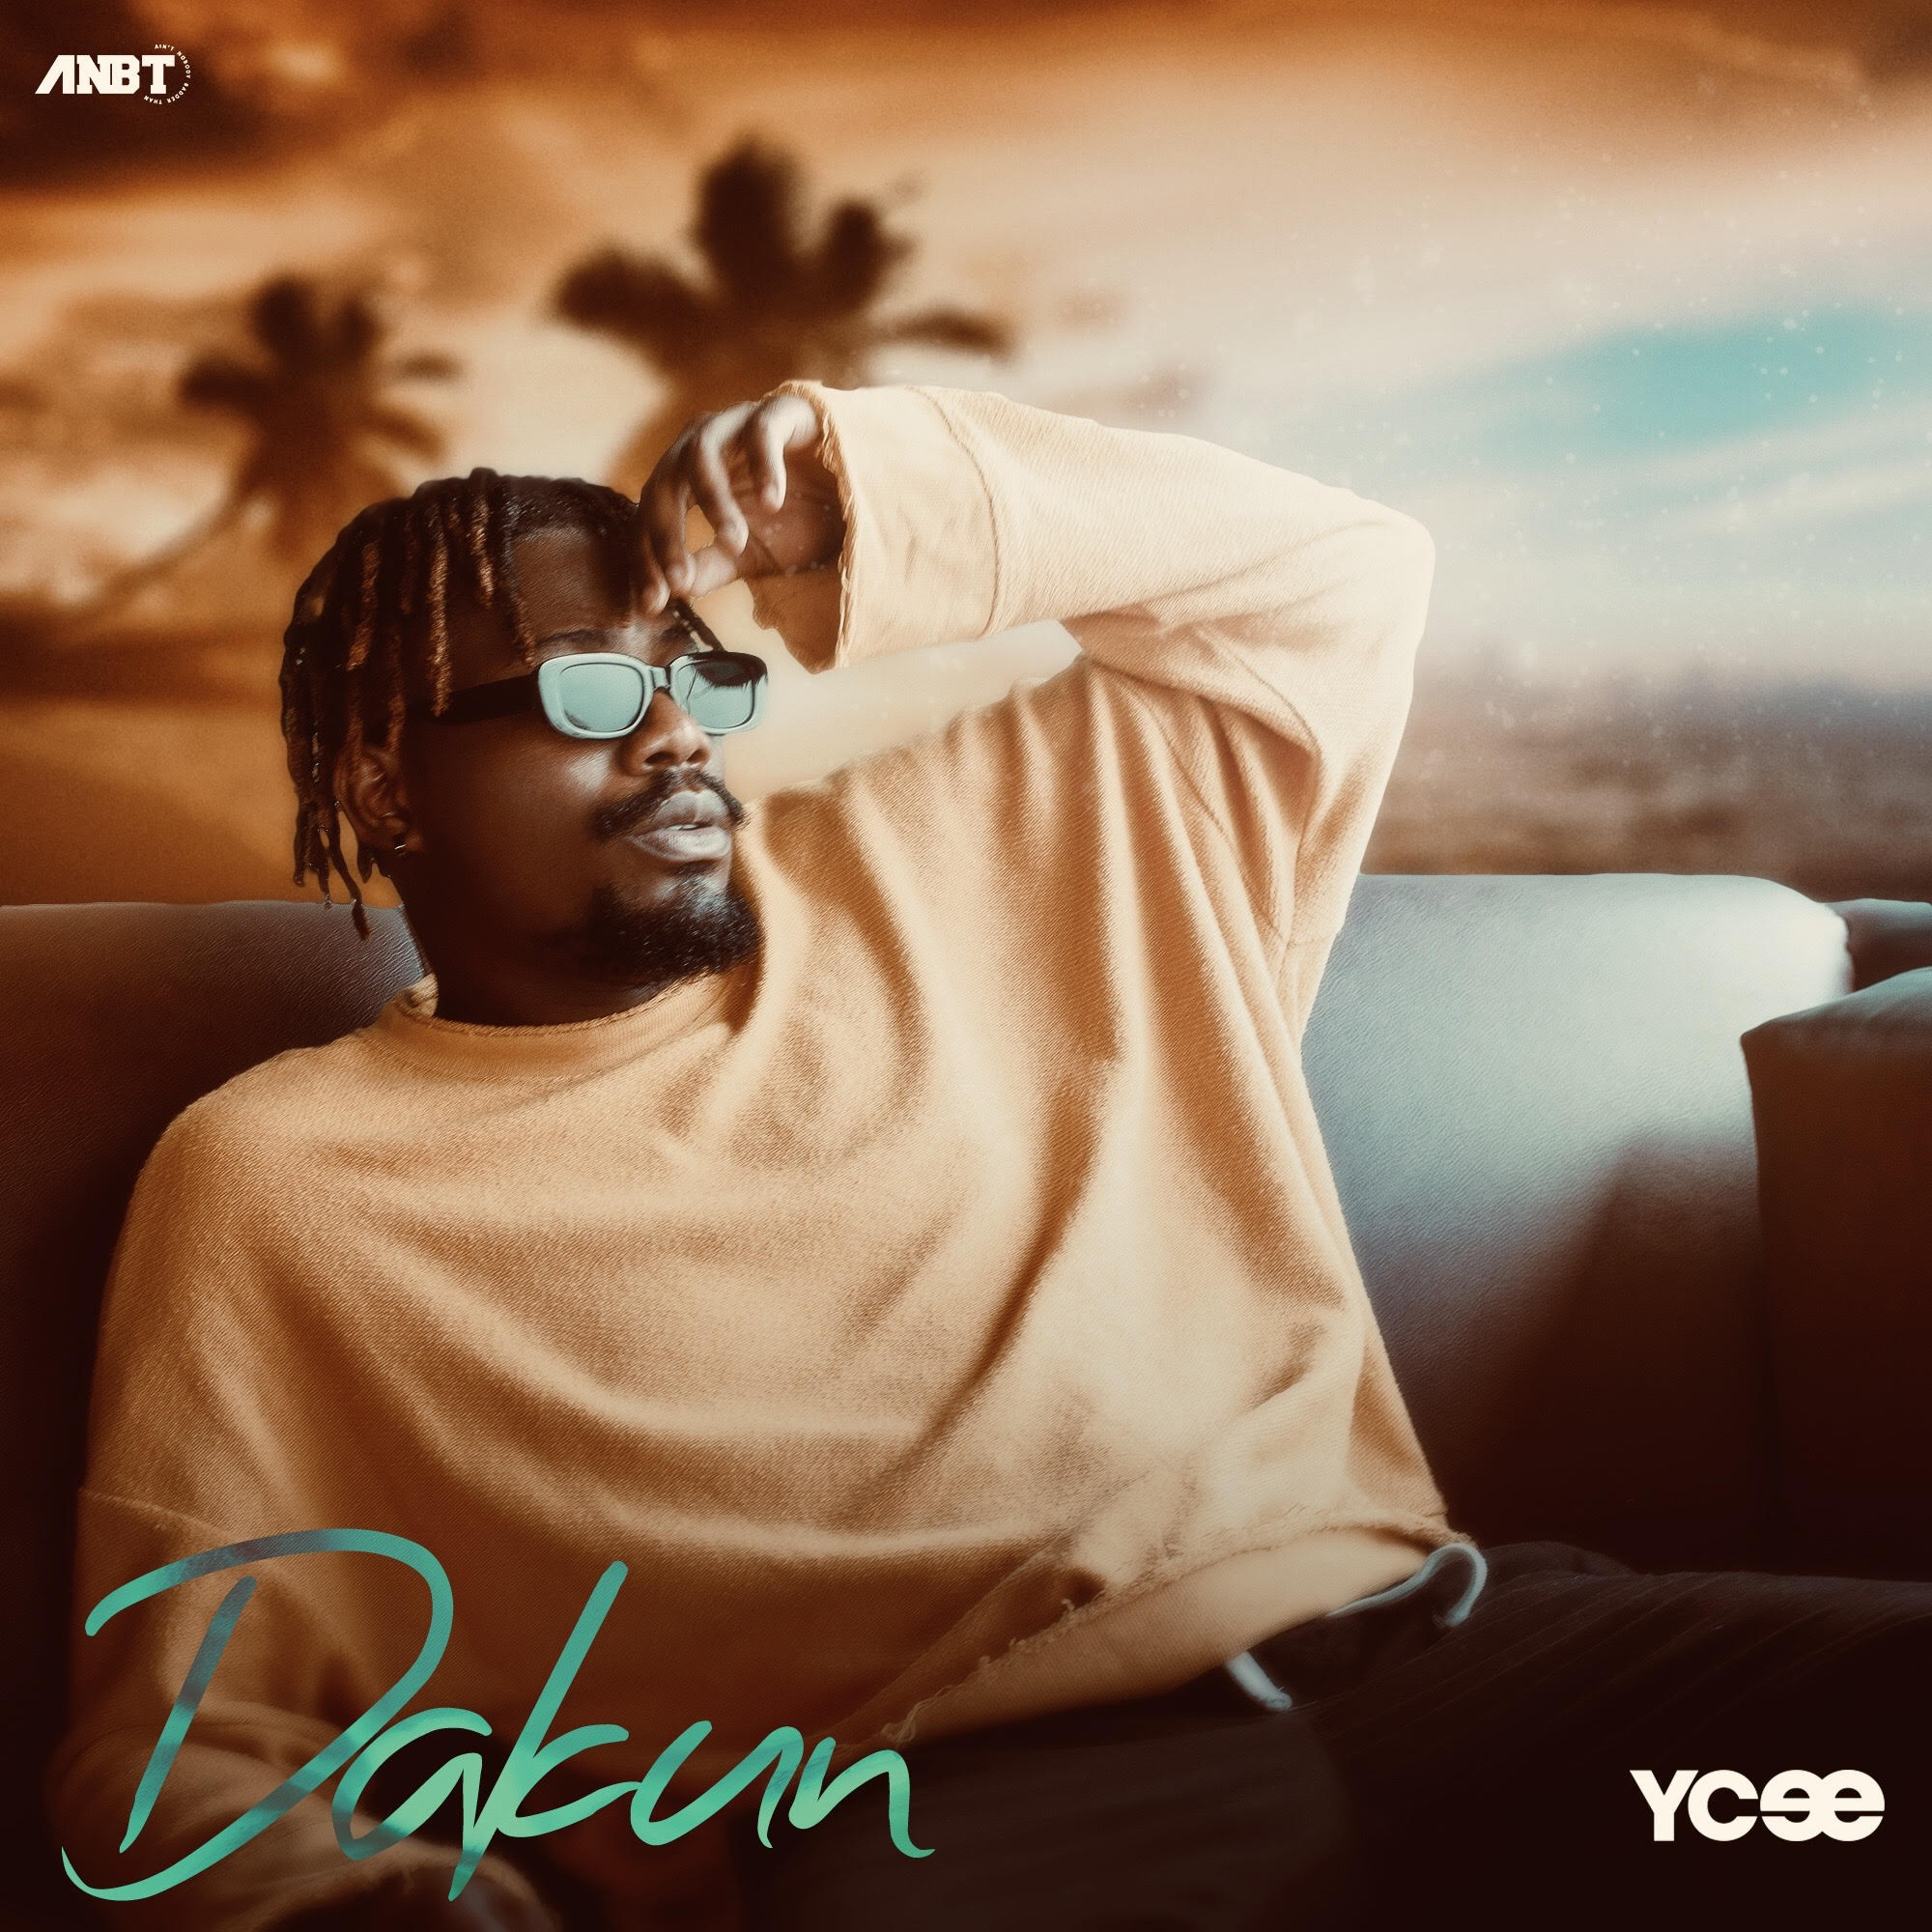 Ahead of YCeevsZAHEER album, Listen to Ycee's 'Dakun'